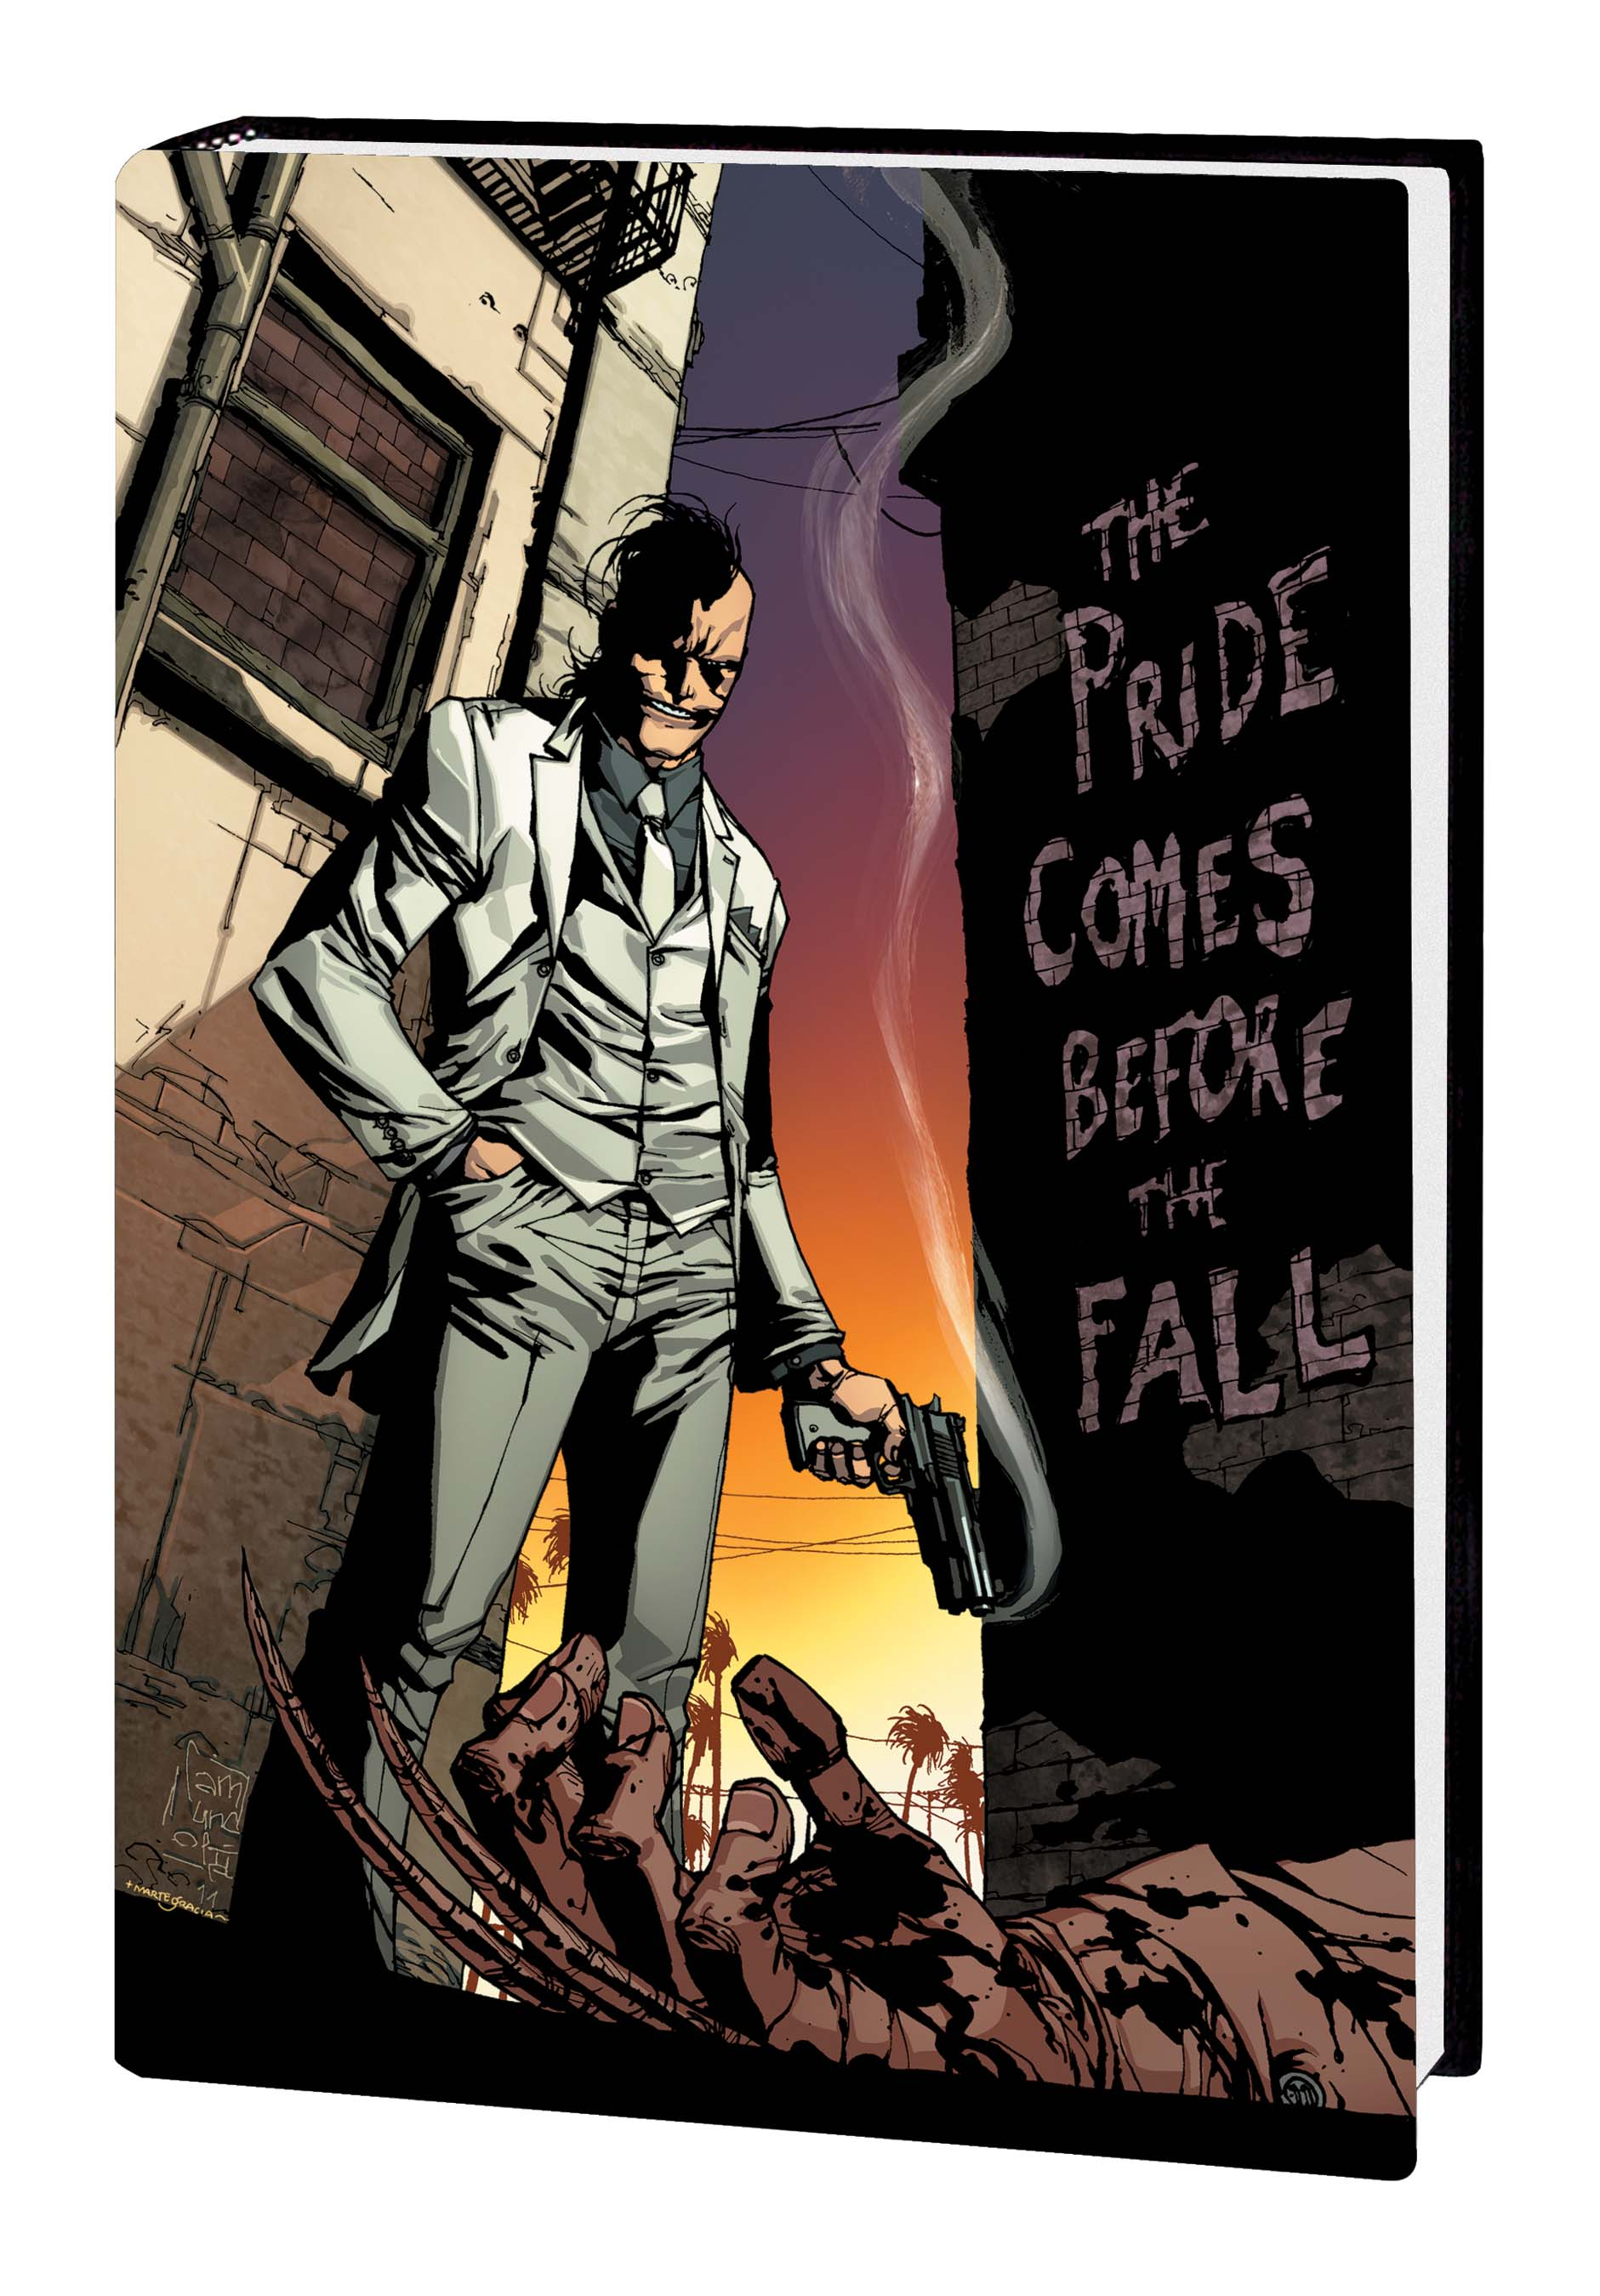 DAKEN: DARK WOLVERINE — THE PRIDE COMES BEFORE THE FALL PREMIERE HC (Hardcover)